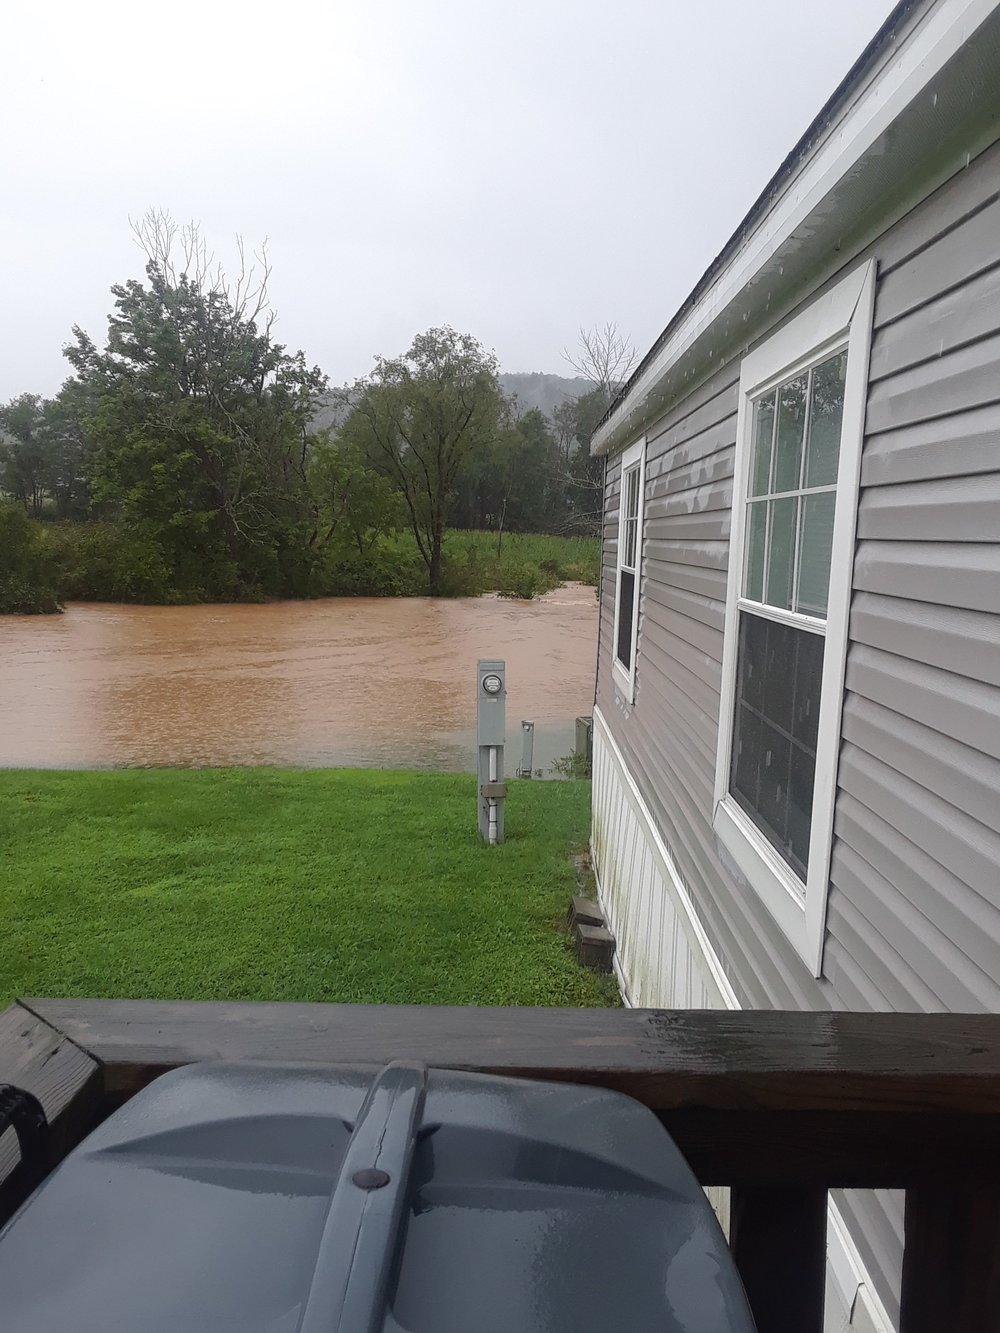 Flooding on West Briar Creek on Monday Morning - courtesy of carla matthews